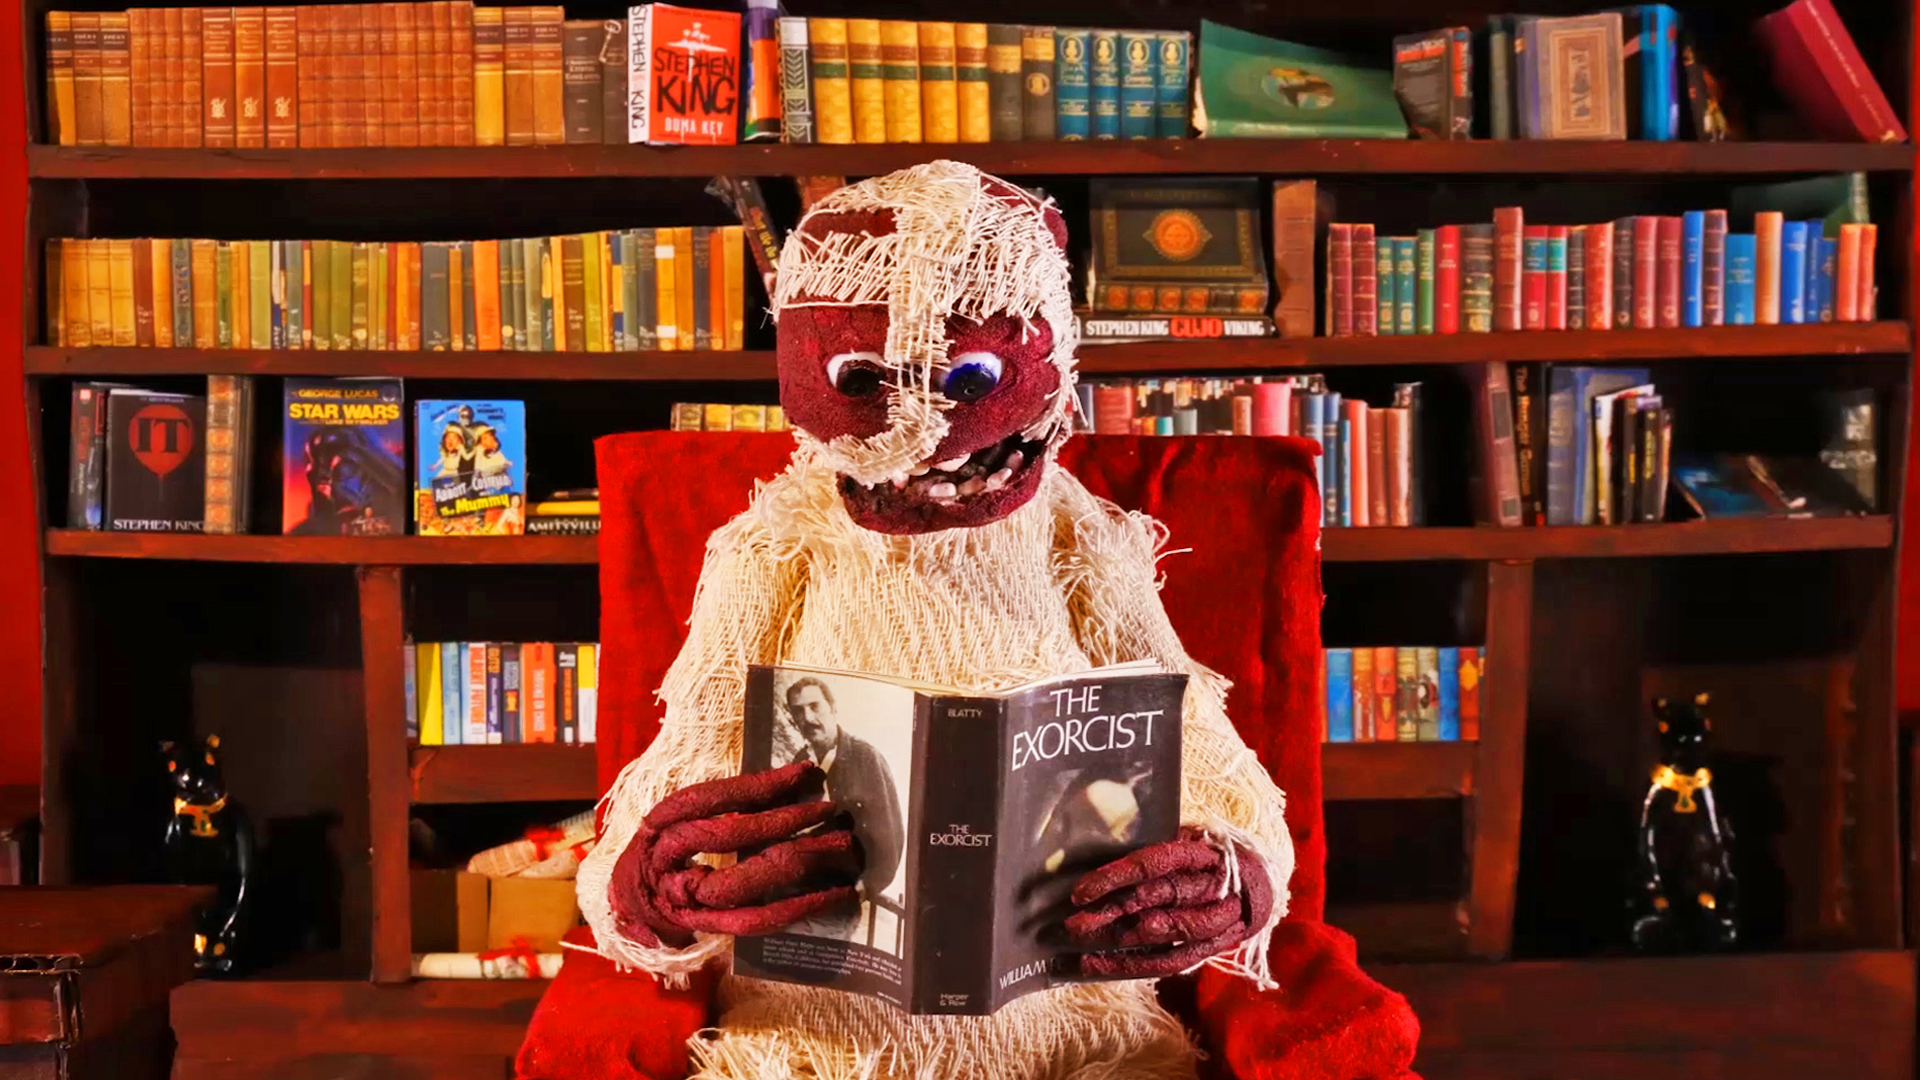 A model of a mummy reading a copy of The Exorcist